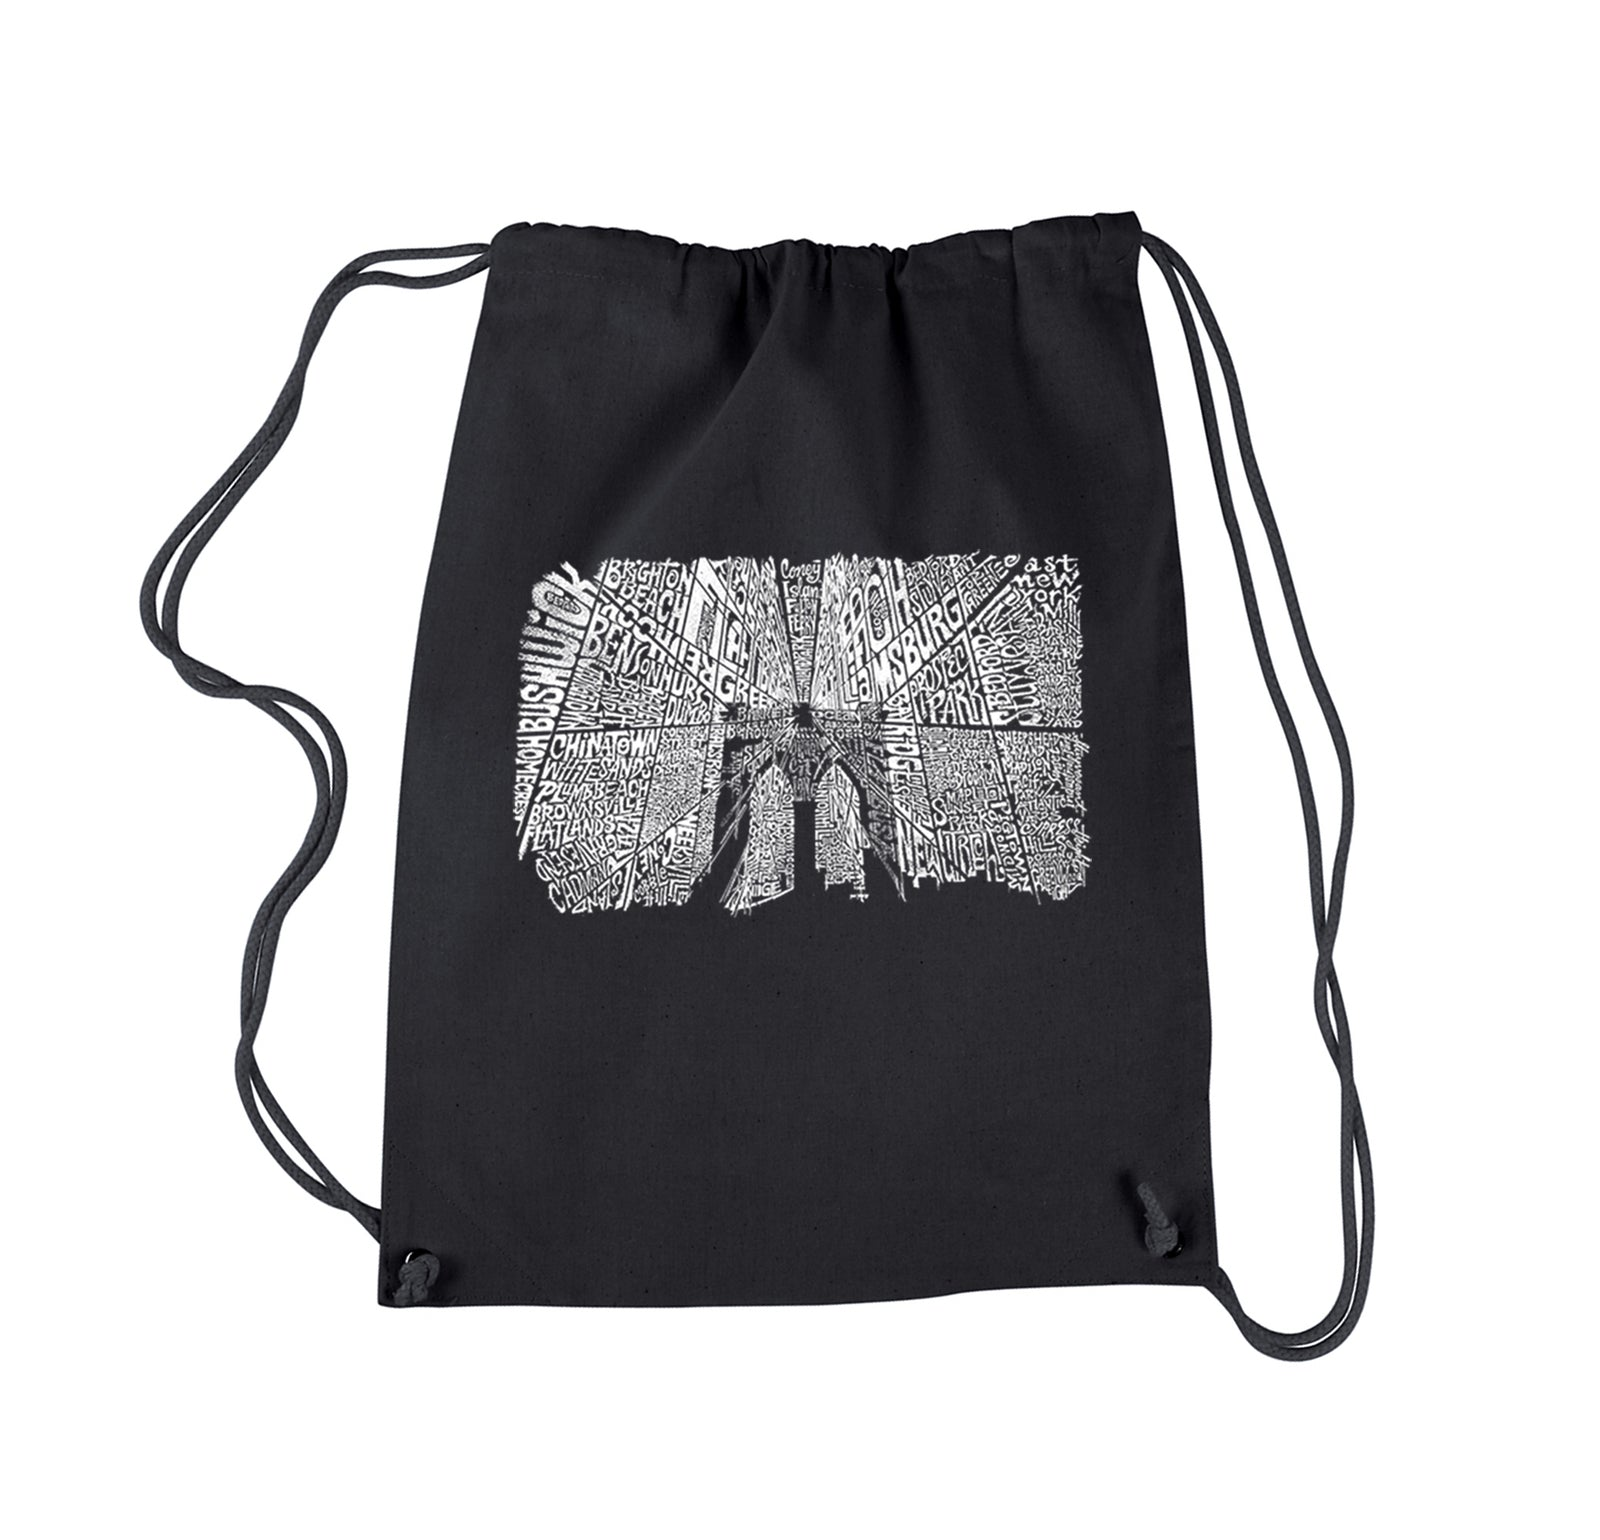 Drawstring Backpack - Brooklyn Bridge